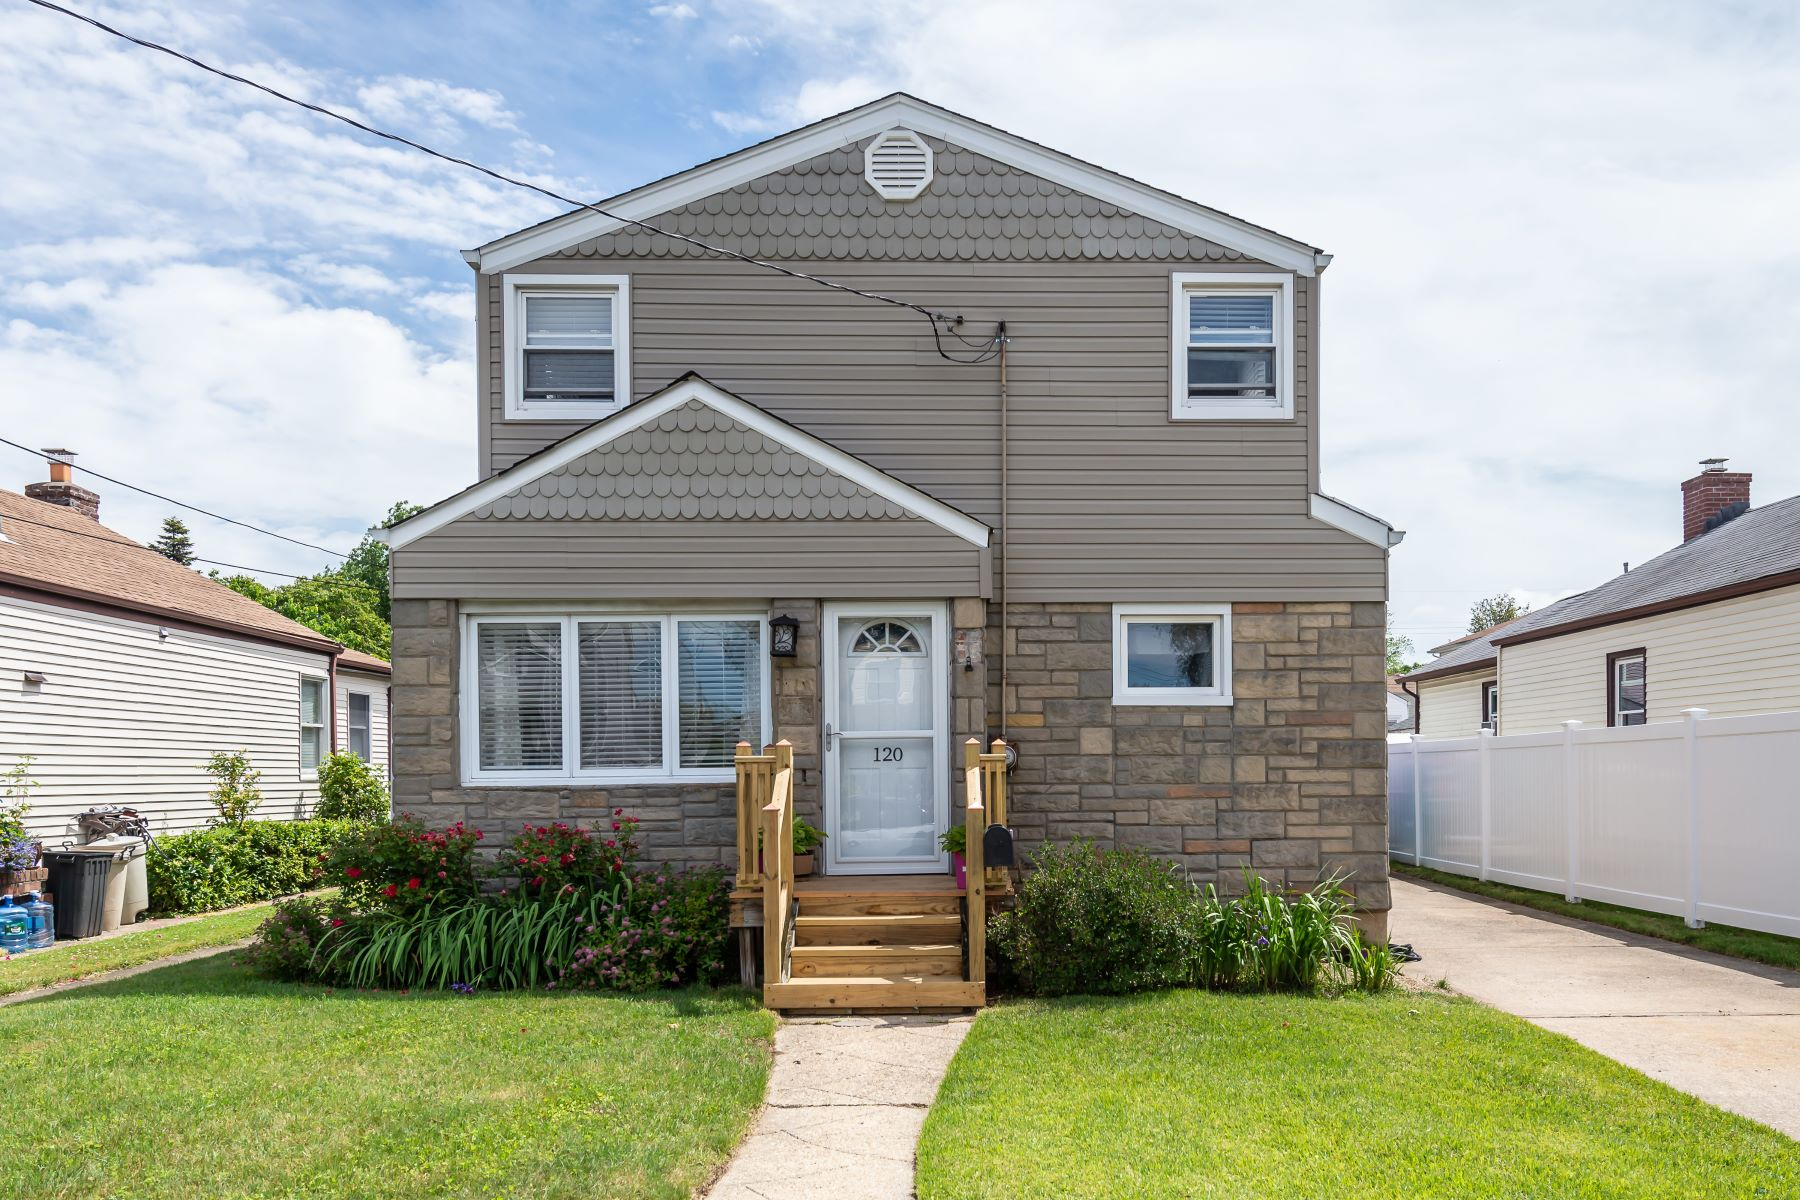 Single Family Homes for Active at Westbury 120 Bert Ave Westbury, New York 11590 United States